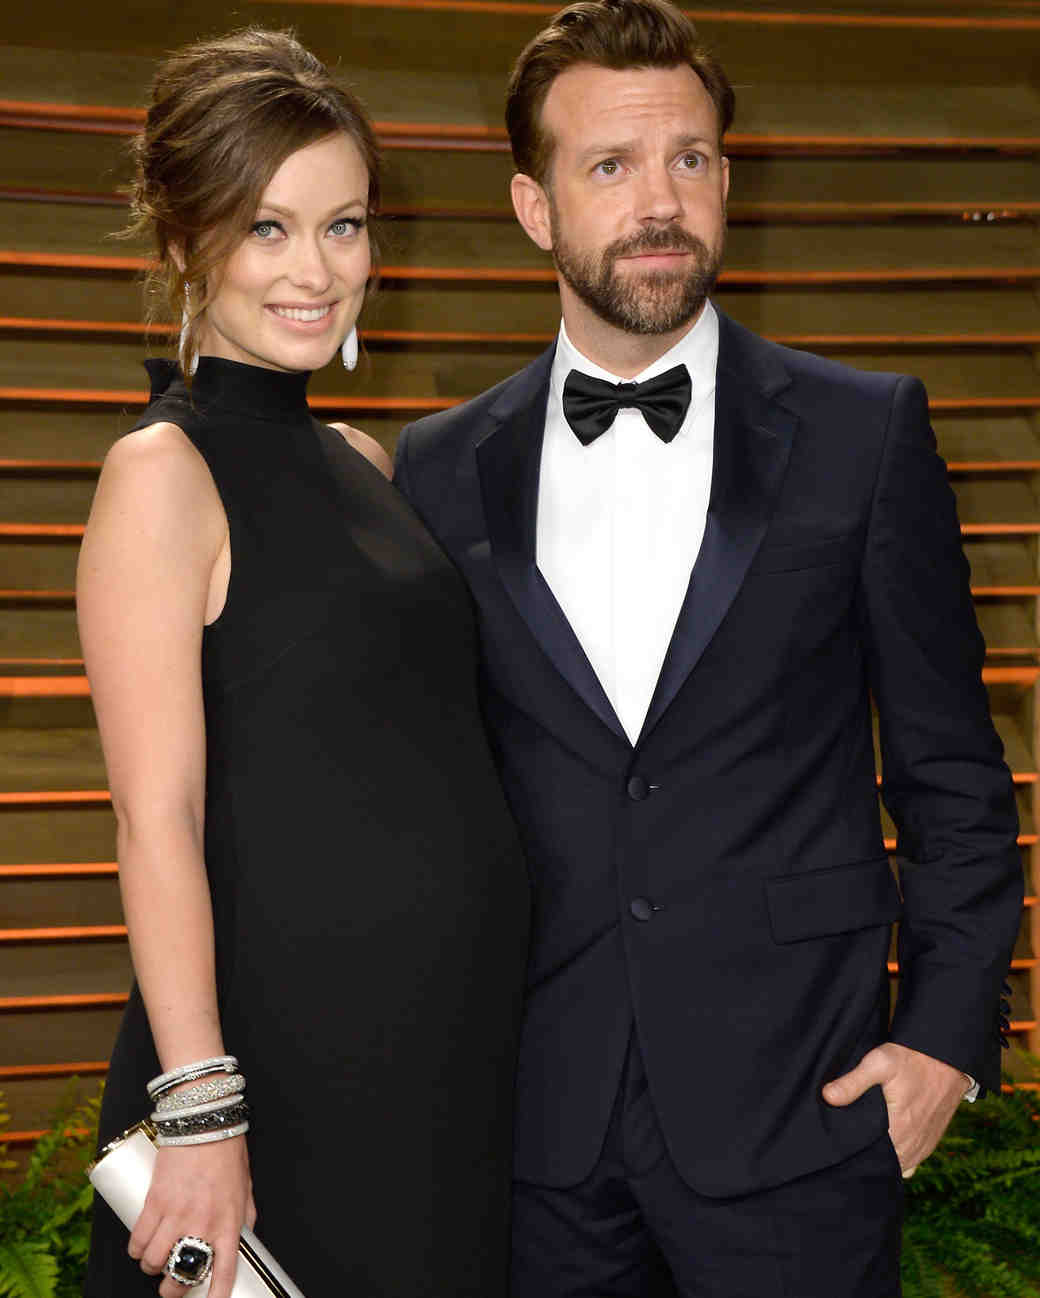 Here's How Jason Sudeikis Landed a Date with Fiancée Olivia Wilde